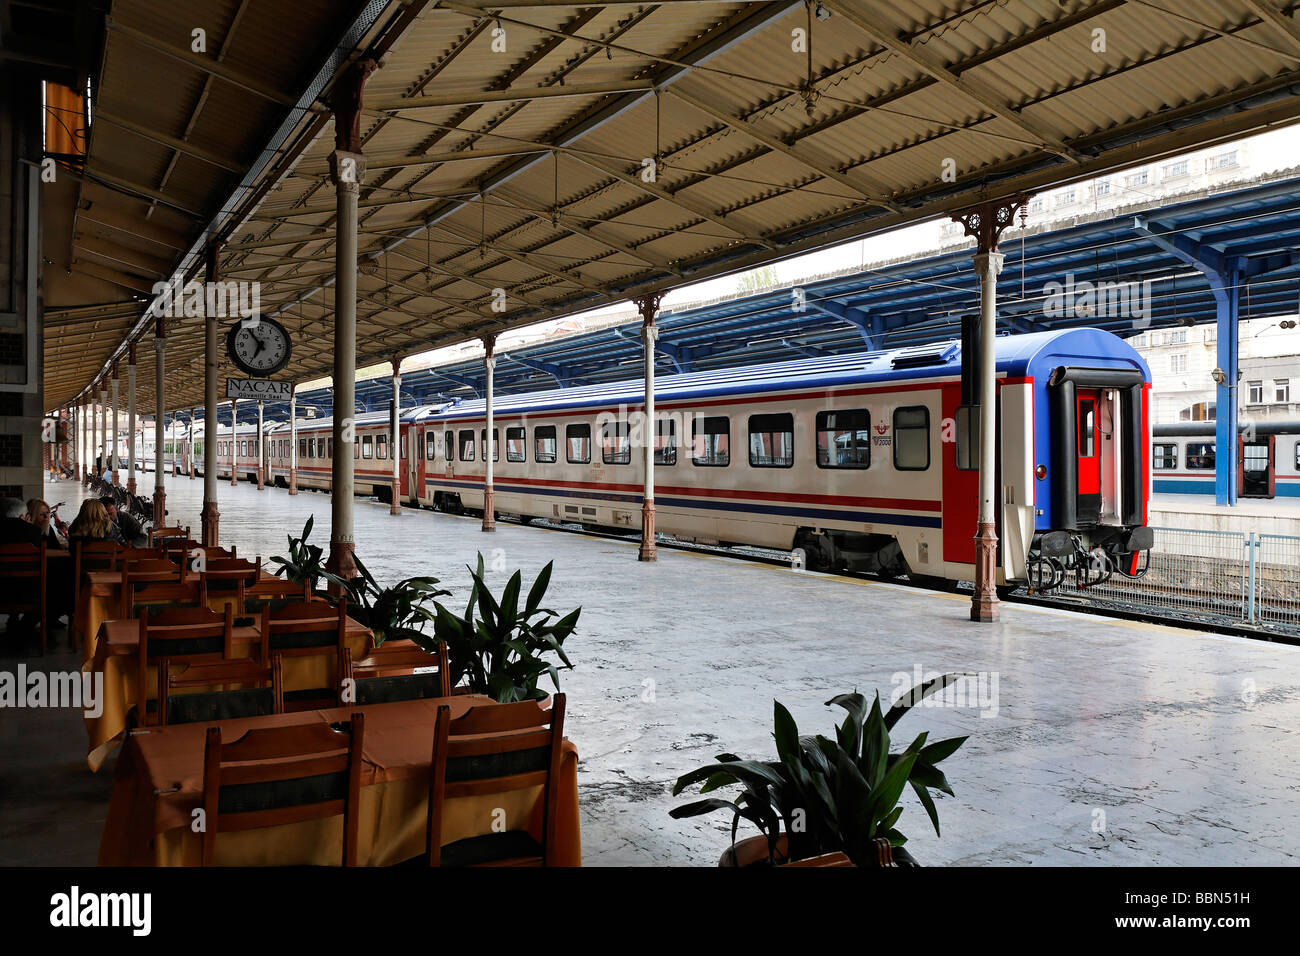 Historical Sirkeci Train Station, platform with train, Istanbul, Turkey - Stock Image